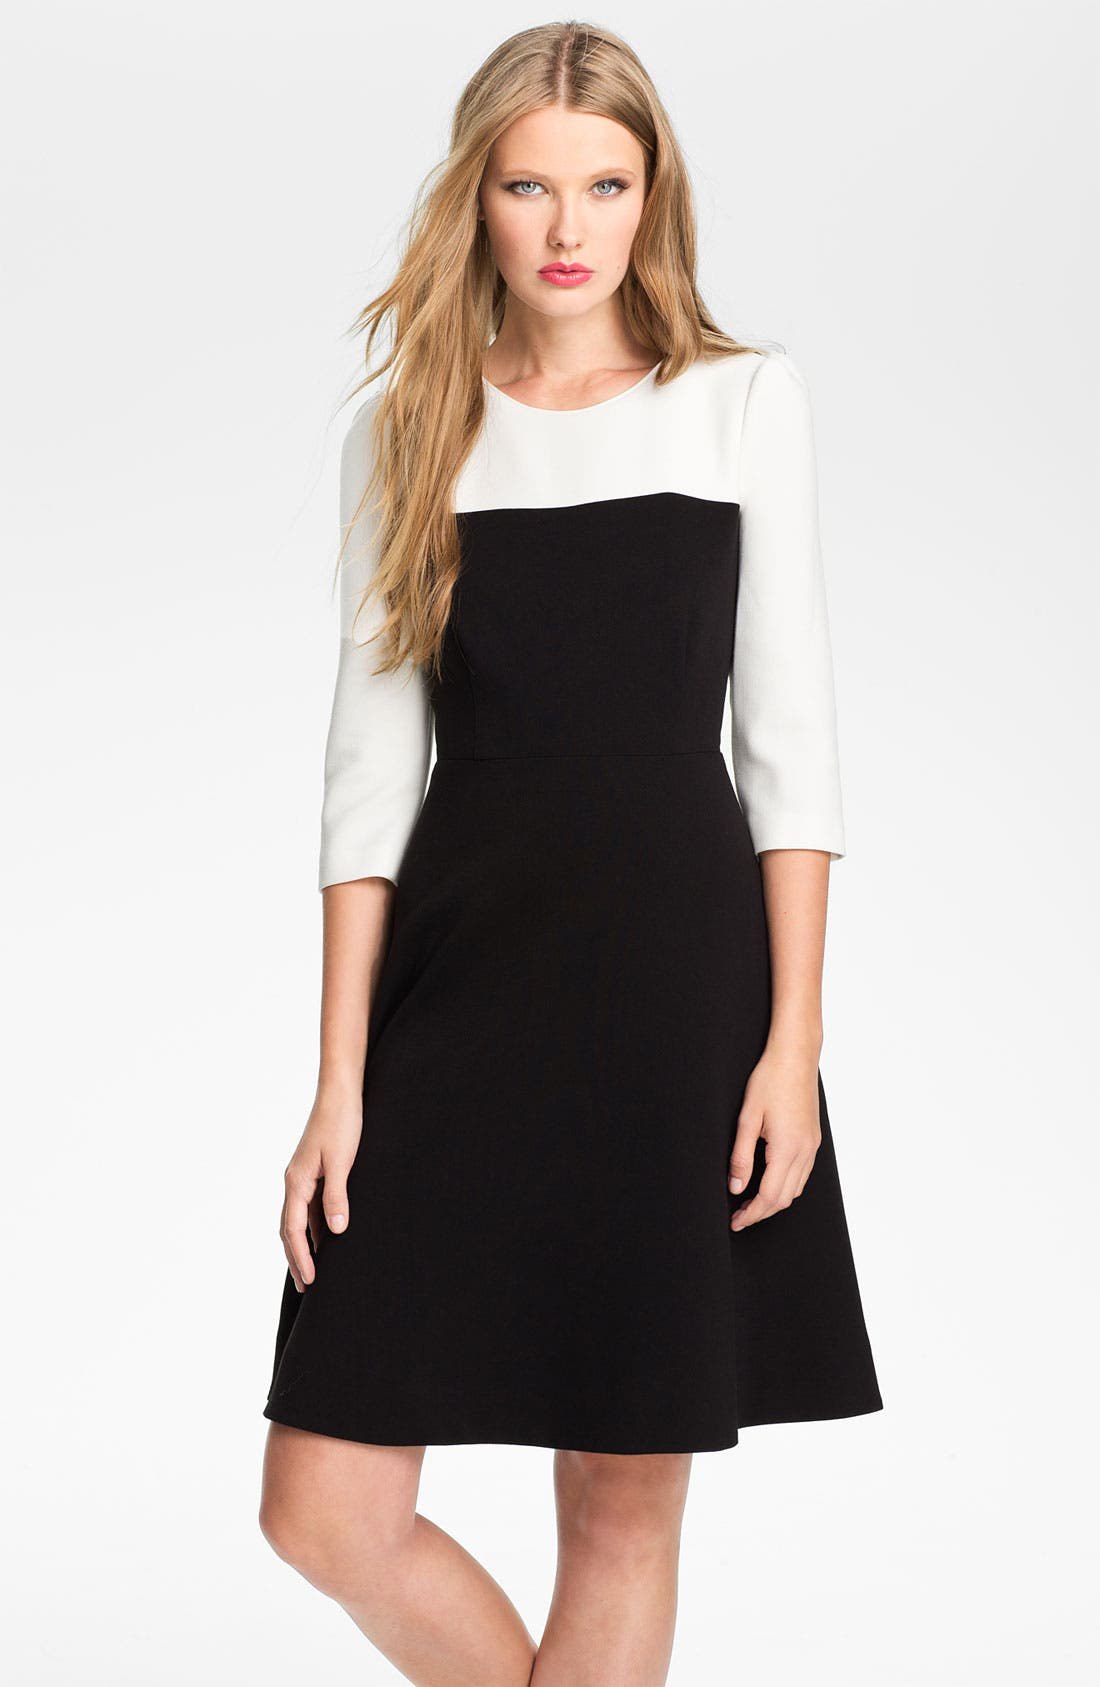 Alternate Image 1 Selected - kate spade new york 'olsen' colorblock fit & flare dress